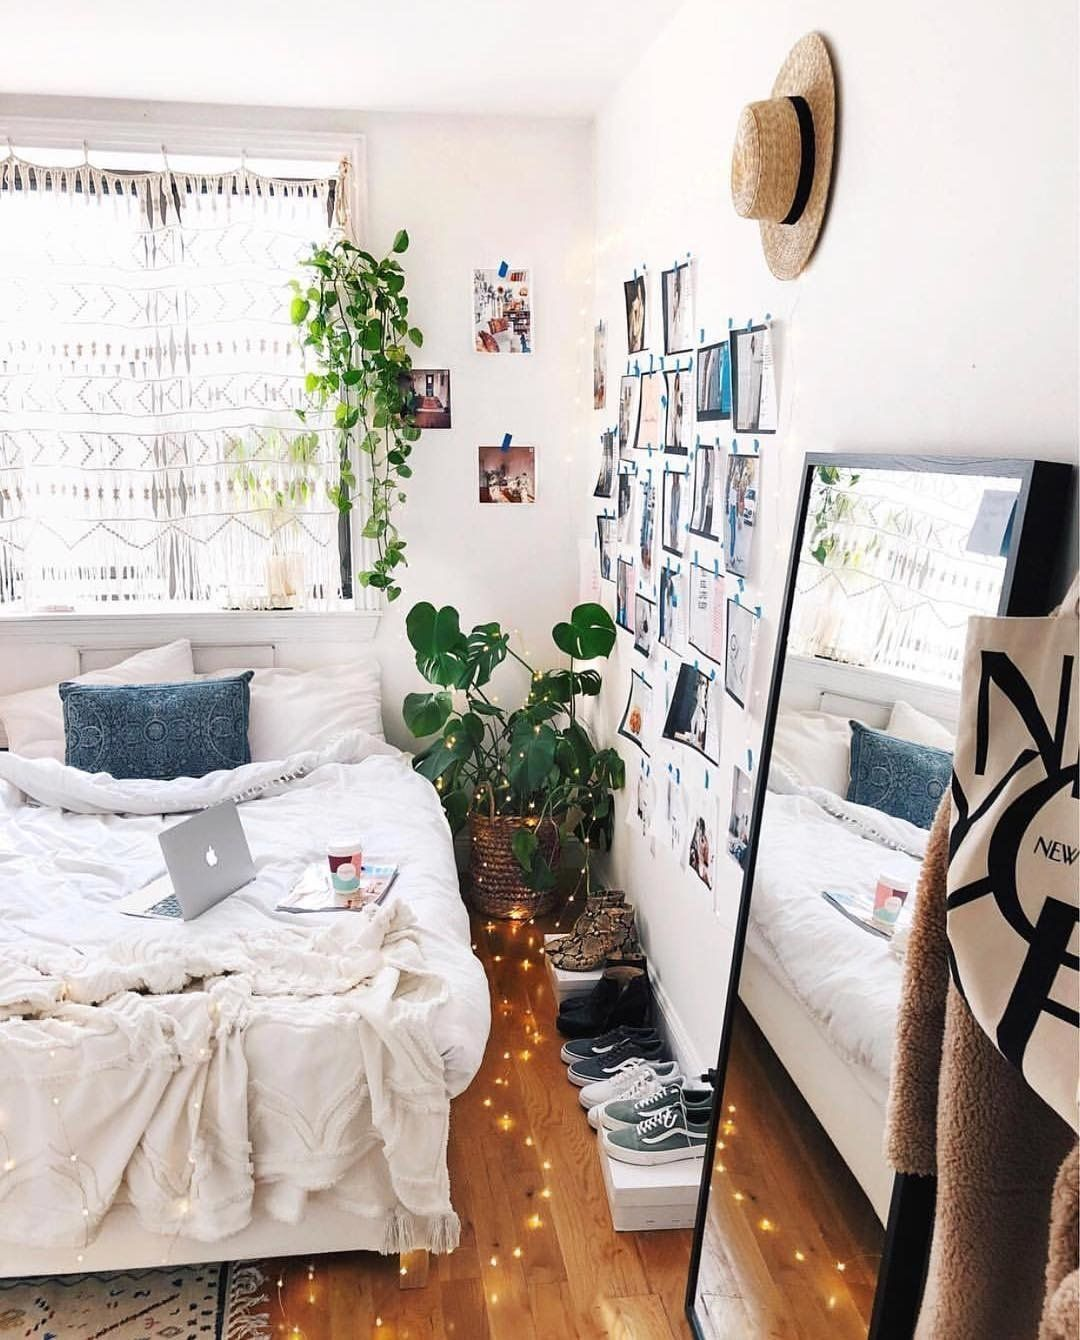 37 Urban Outfitters Bedroom Ideas Urban Outfitters Bedroom